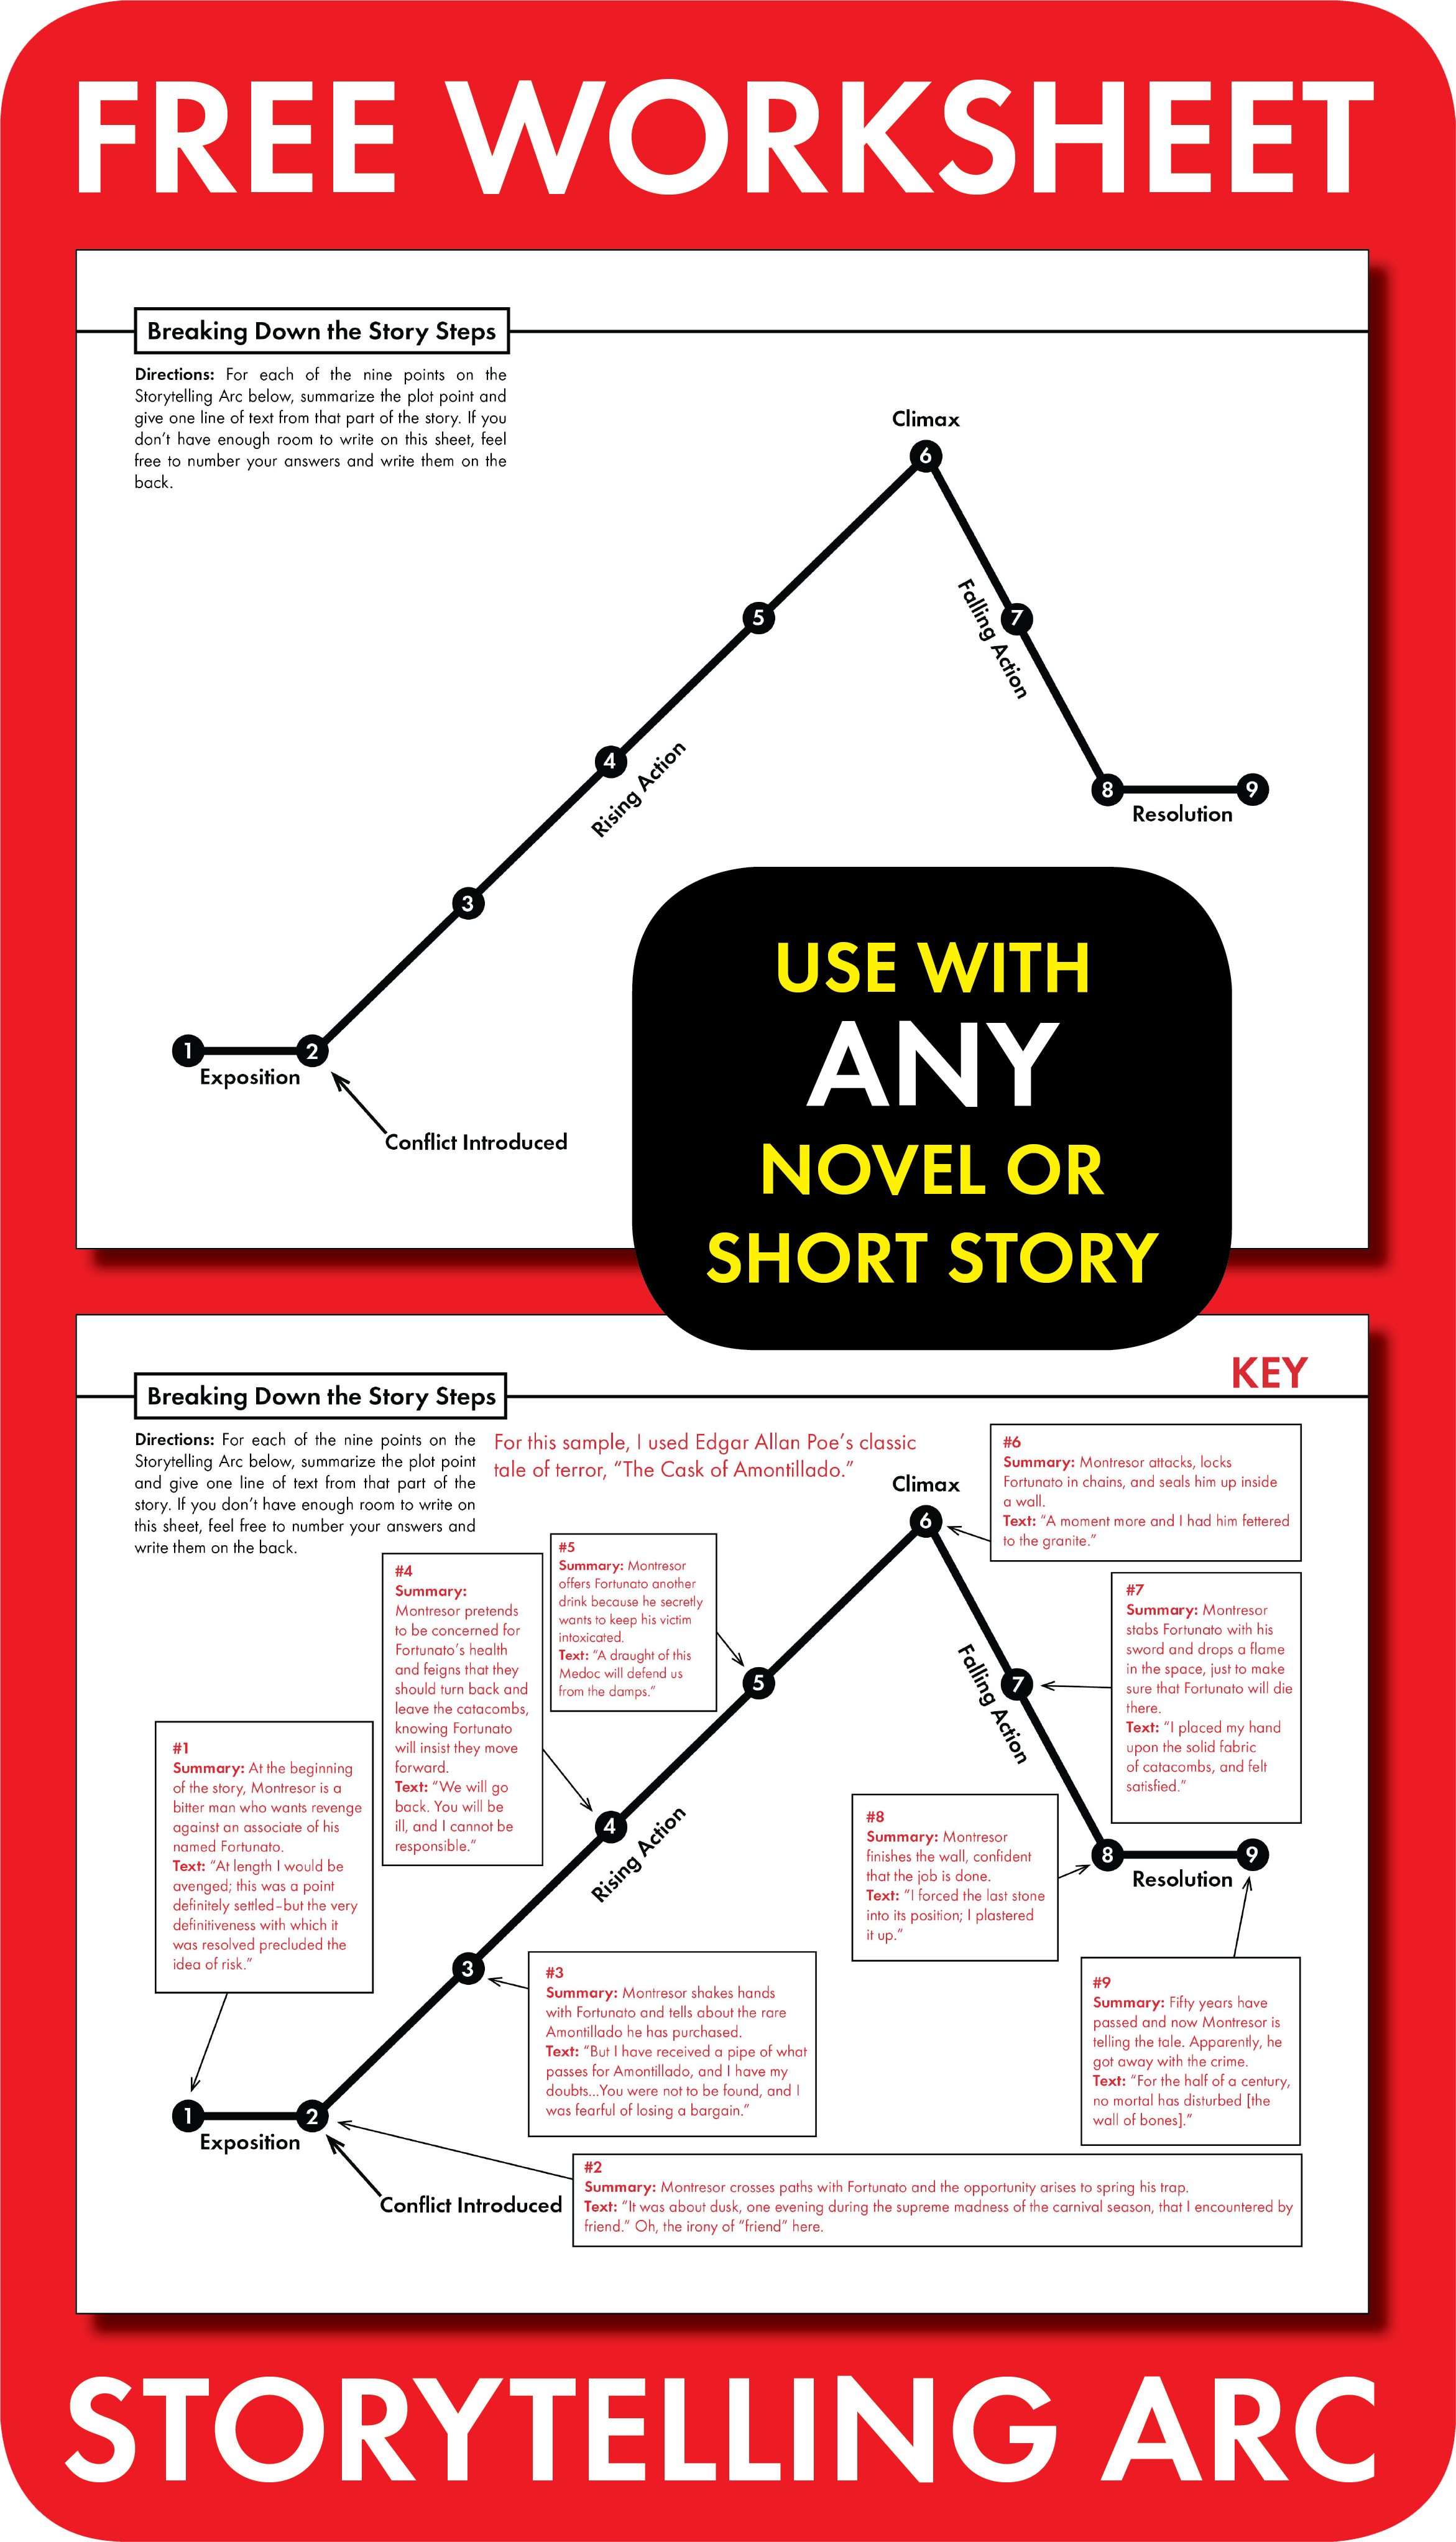 Storytelling Arc Free Handout To Use With Any Short Story